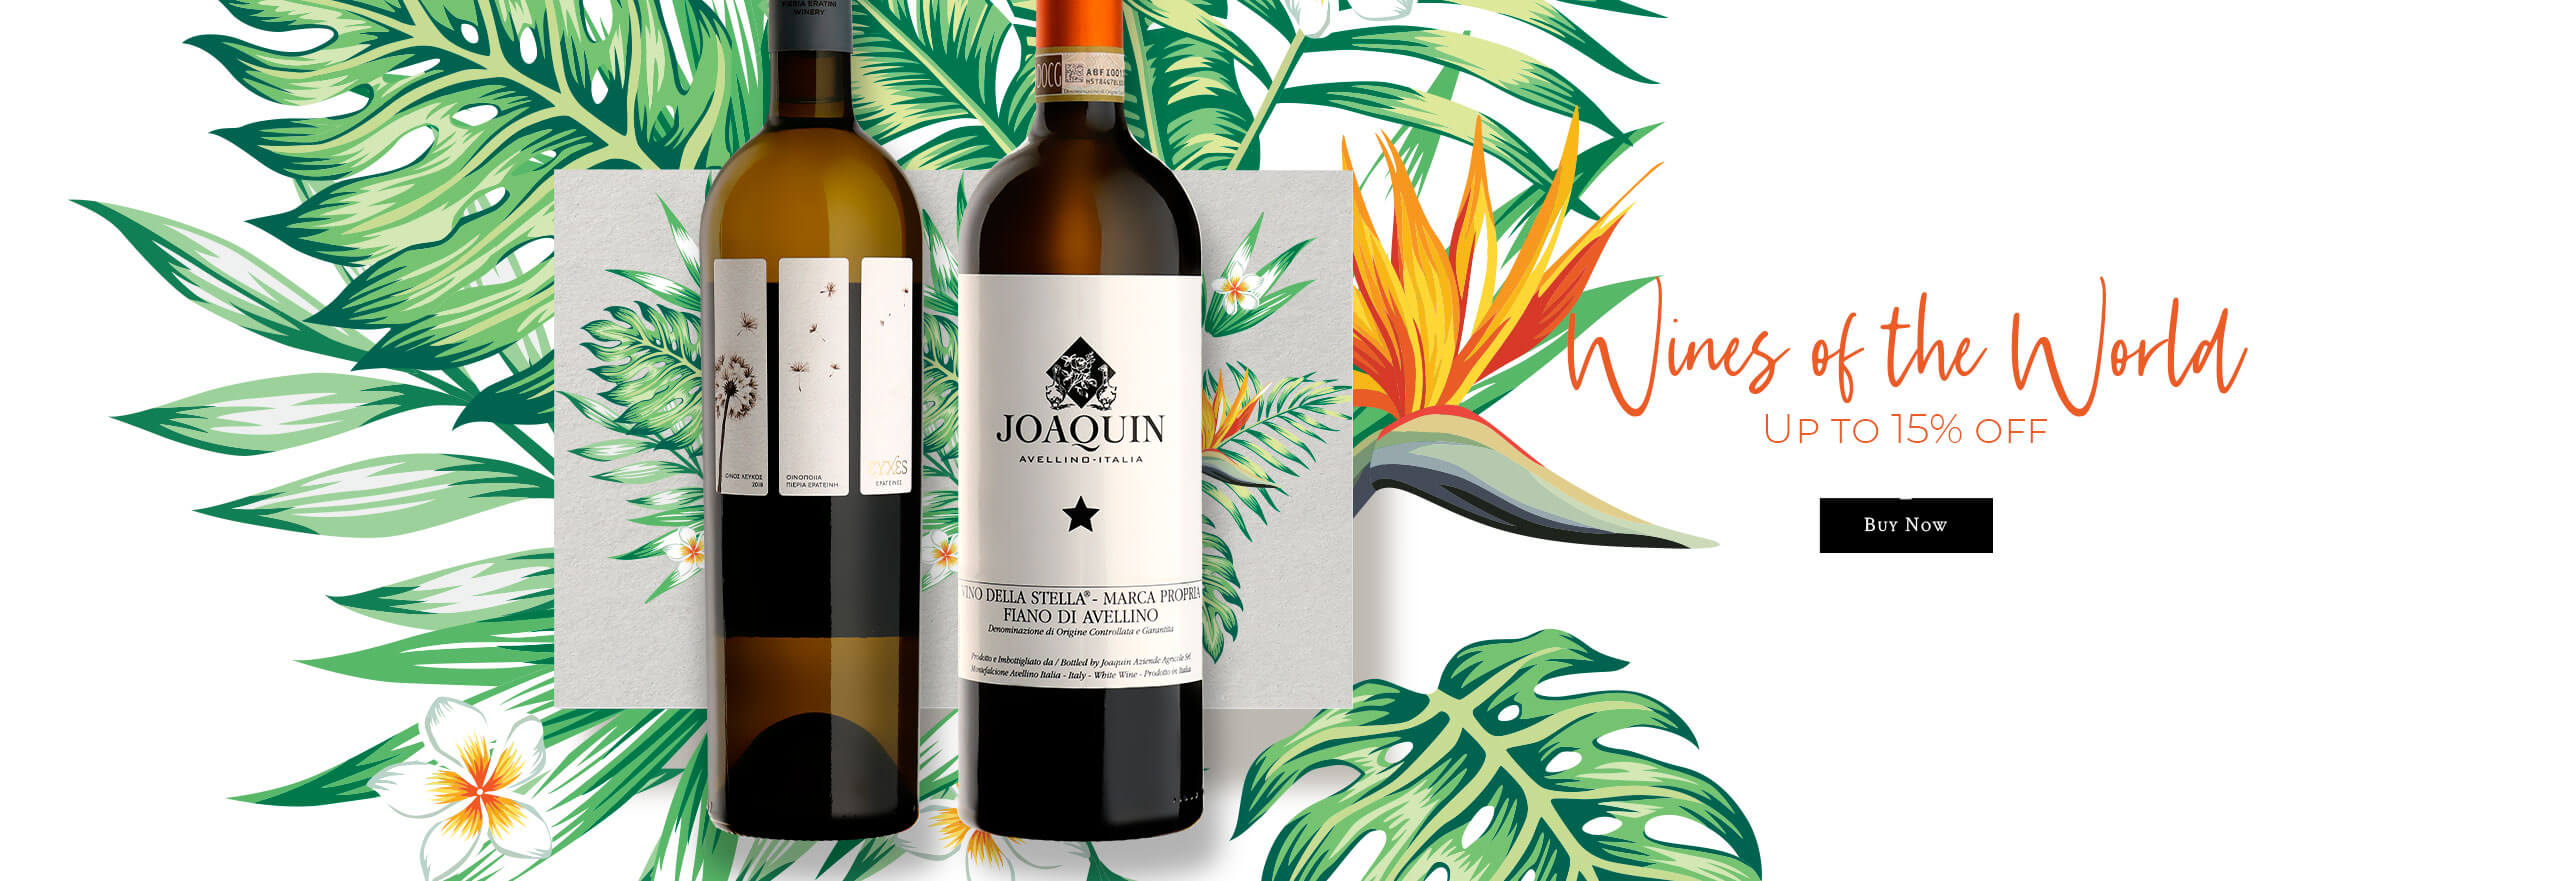 Wines of the World: up to 15% discount on our selection!